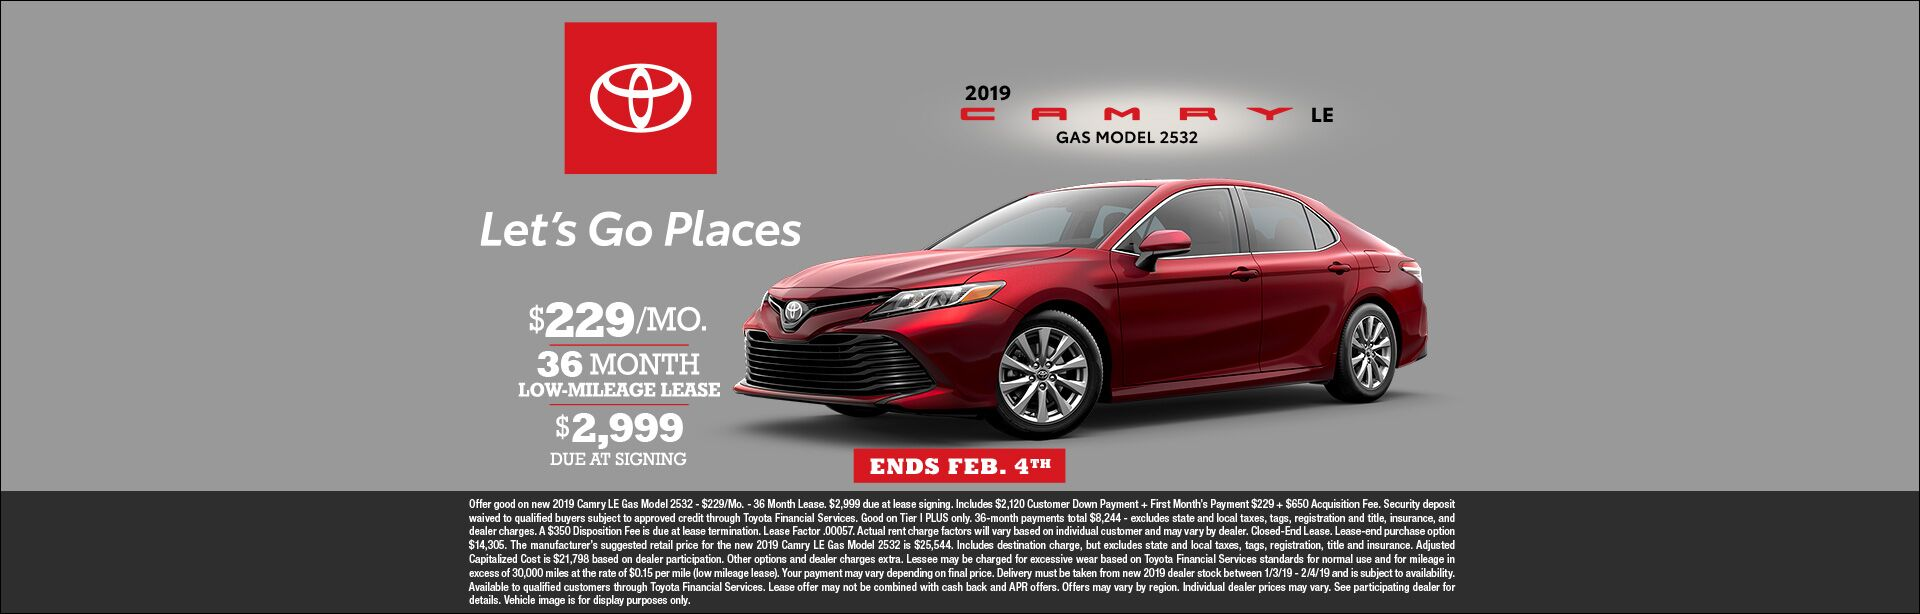 Camry Lease Jan 2019